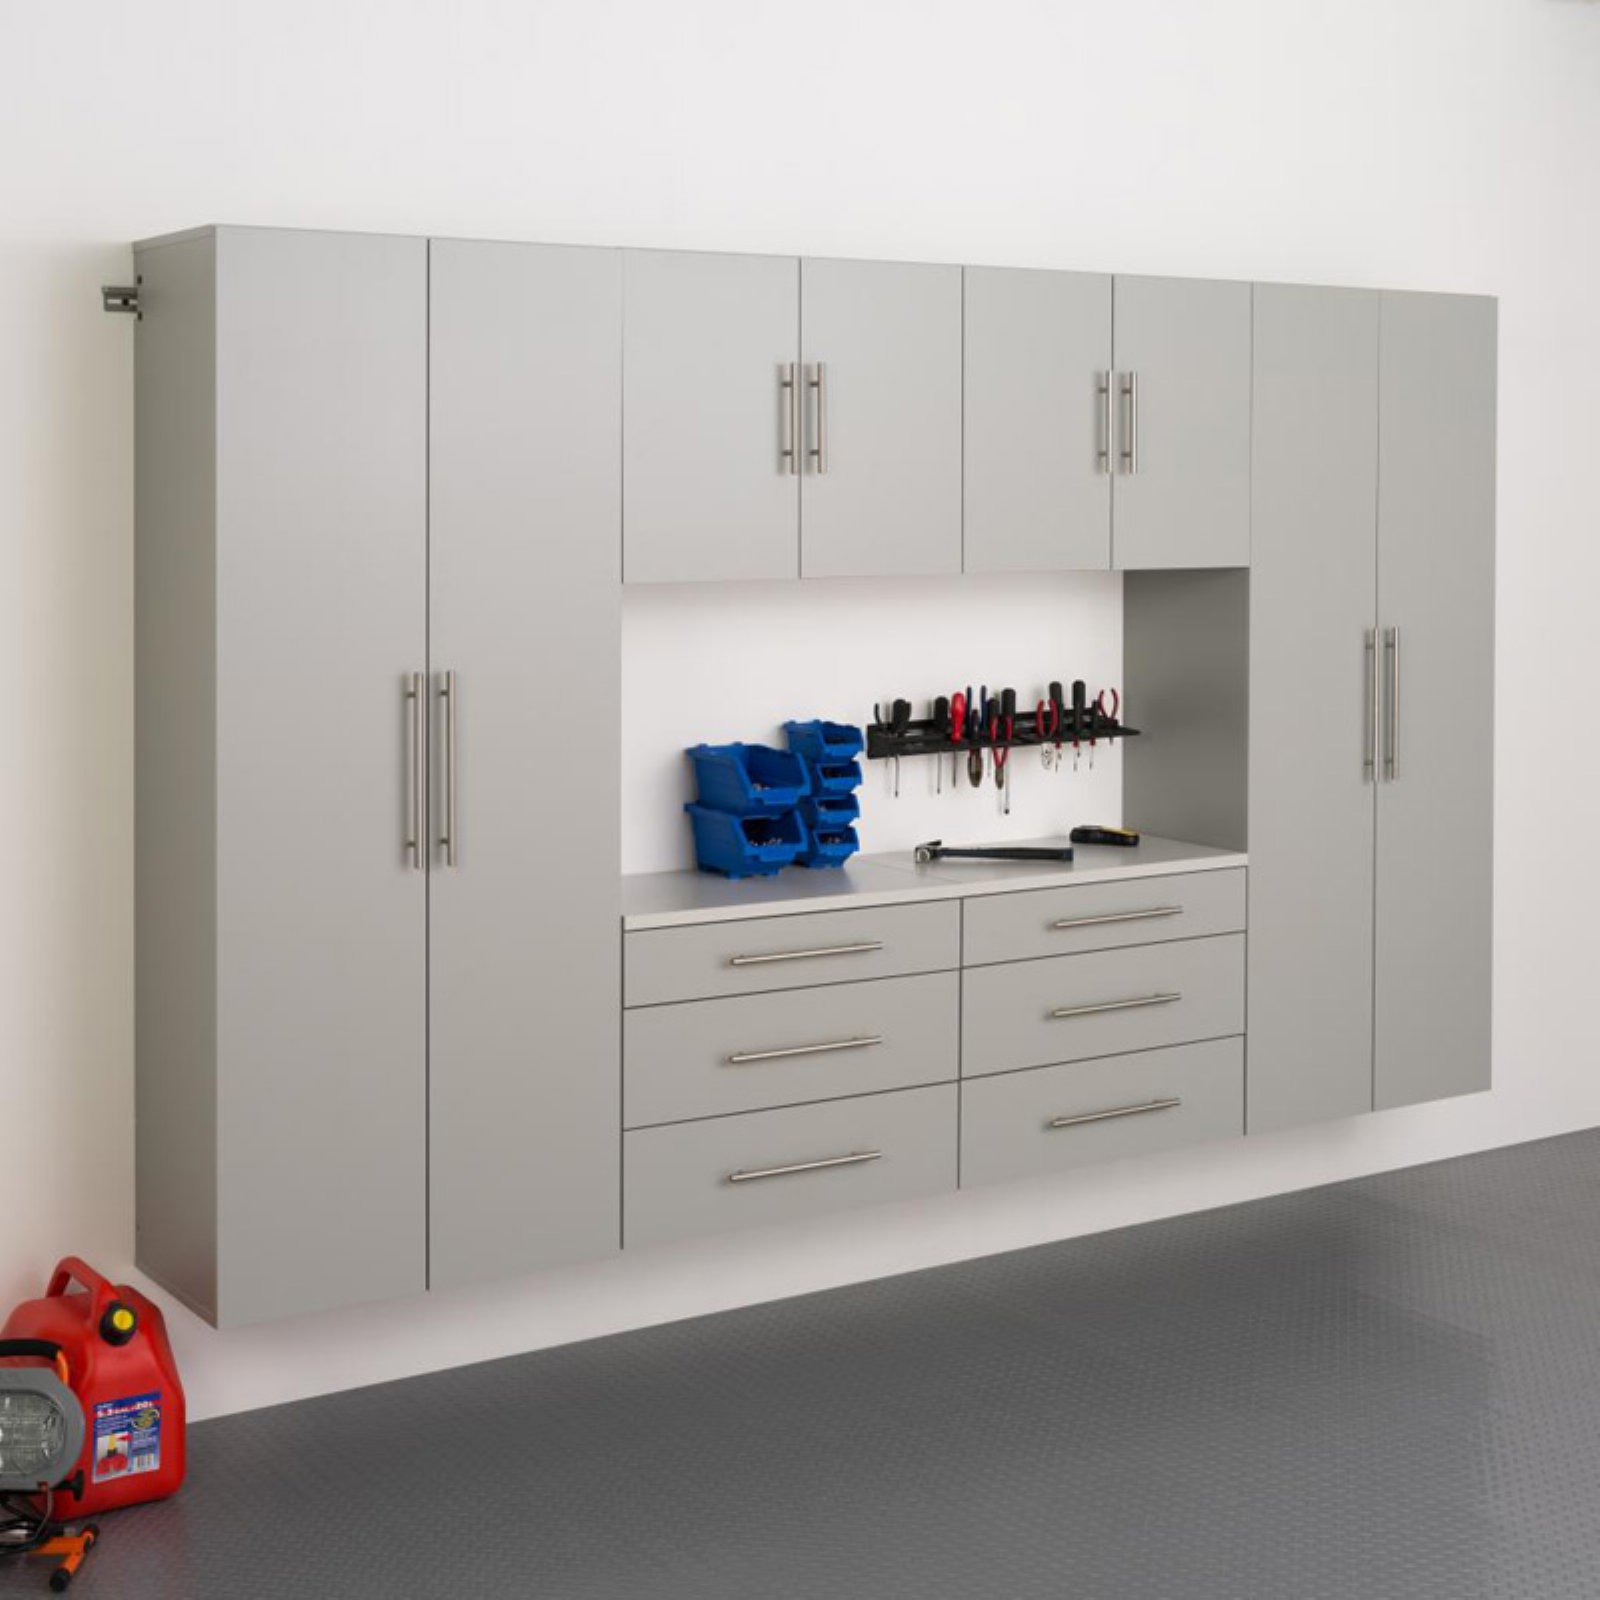 "HangUps 120"" Storage Cabinet Set I, 6-Piece"